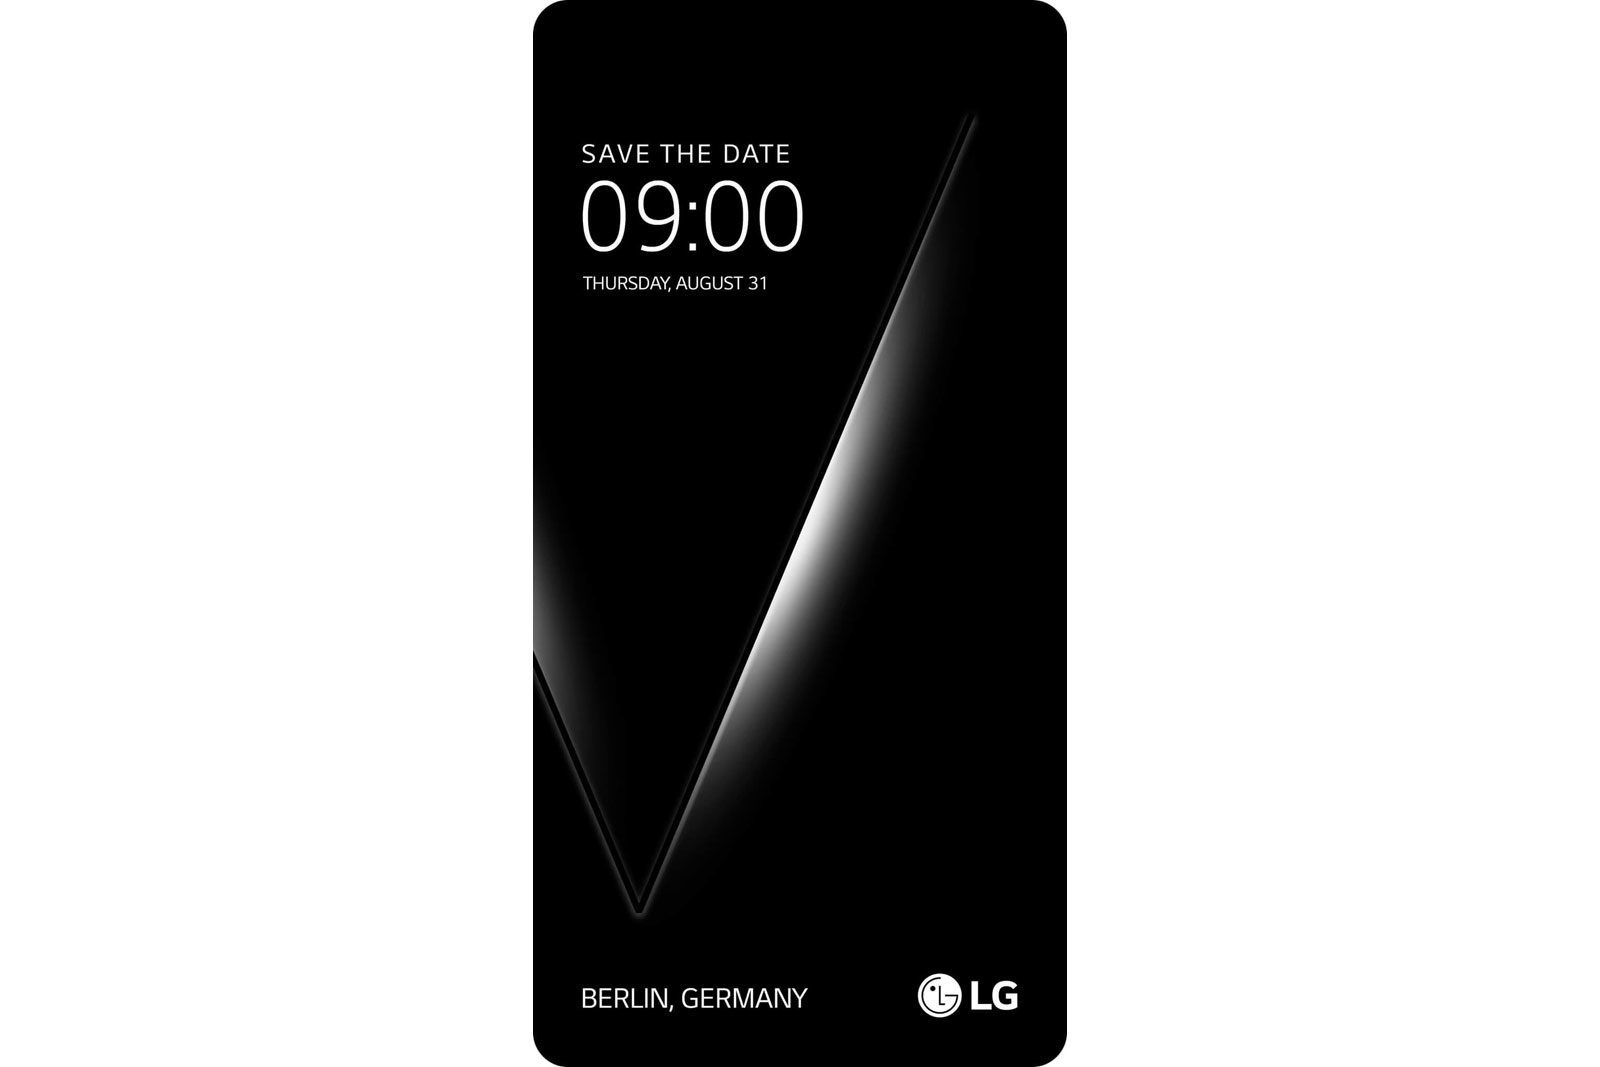 LG V30 launch confirmed for August at IFA 2017